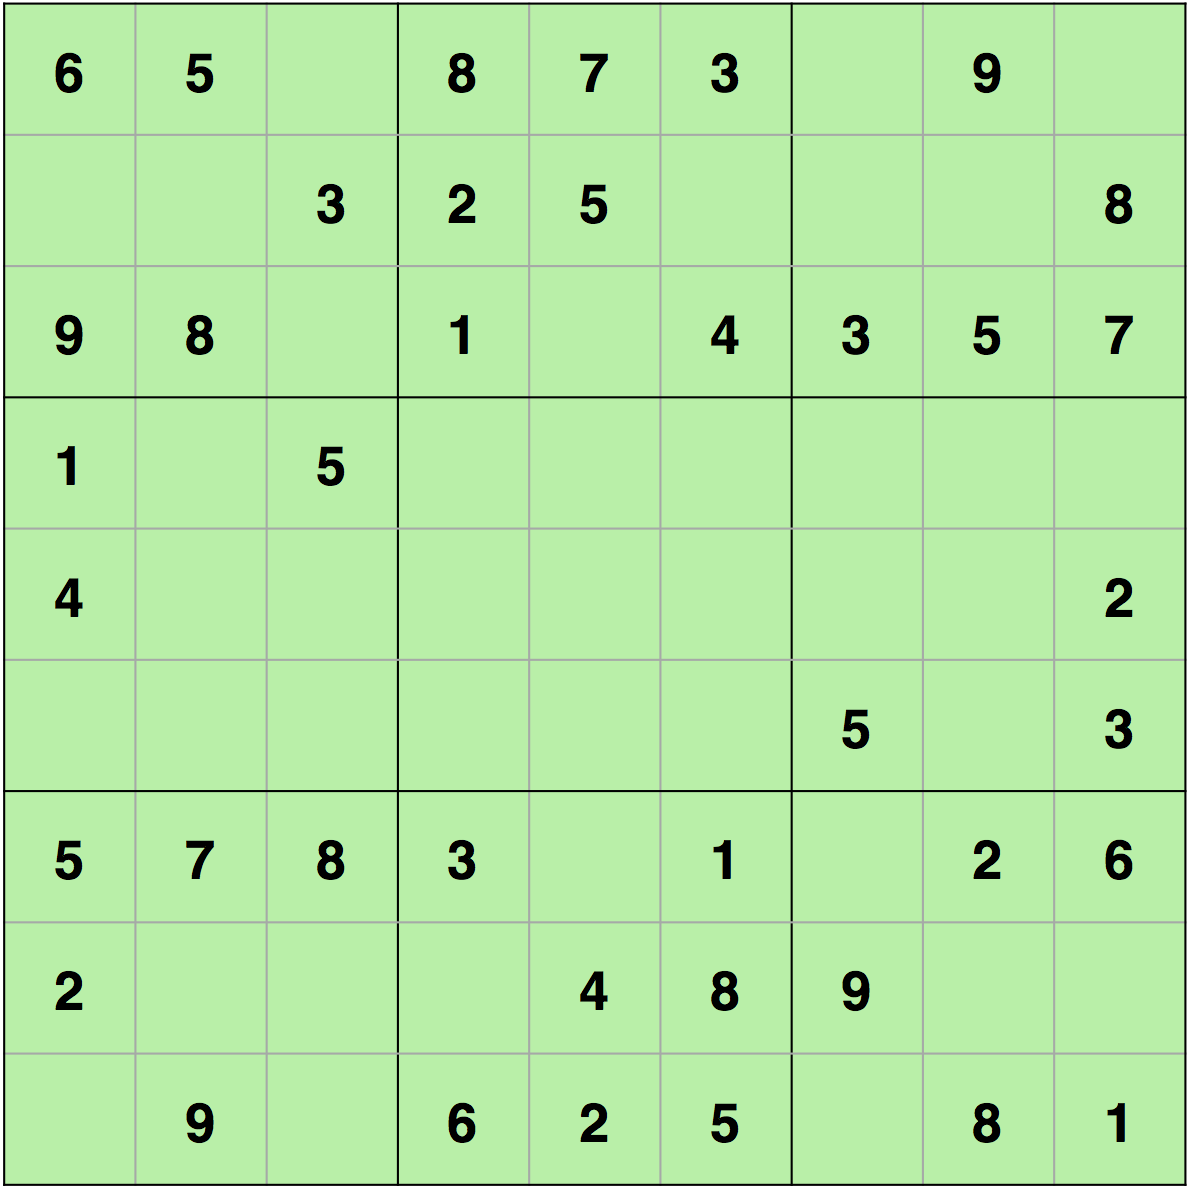 Unsolved sudoku using backtracking